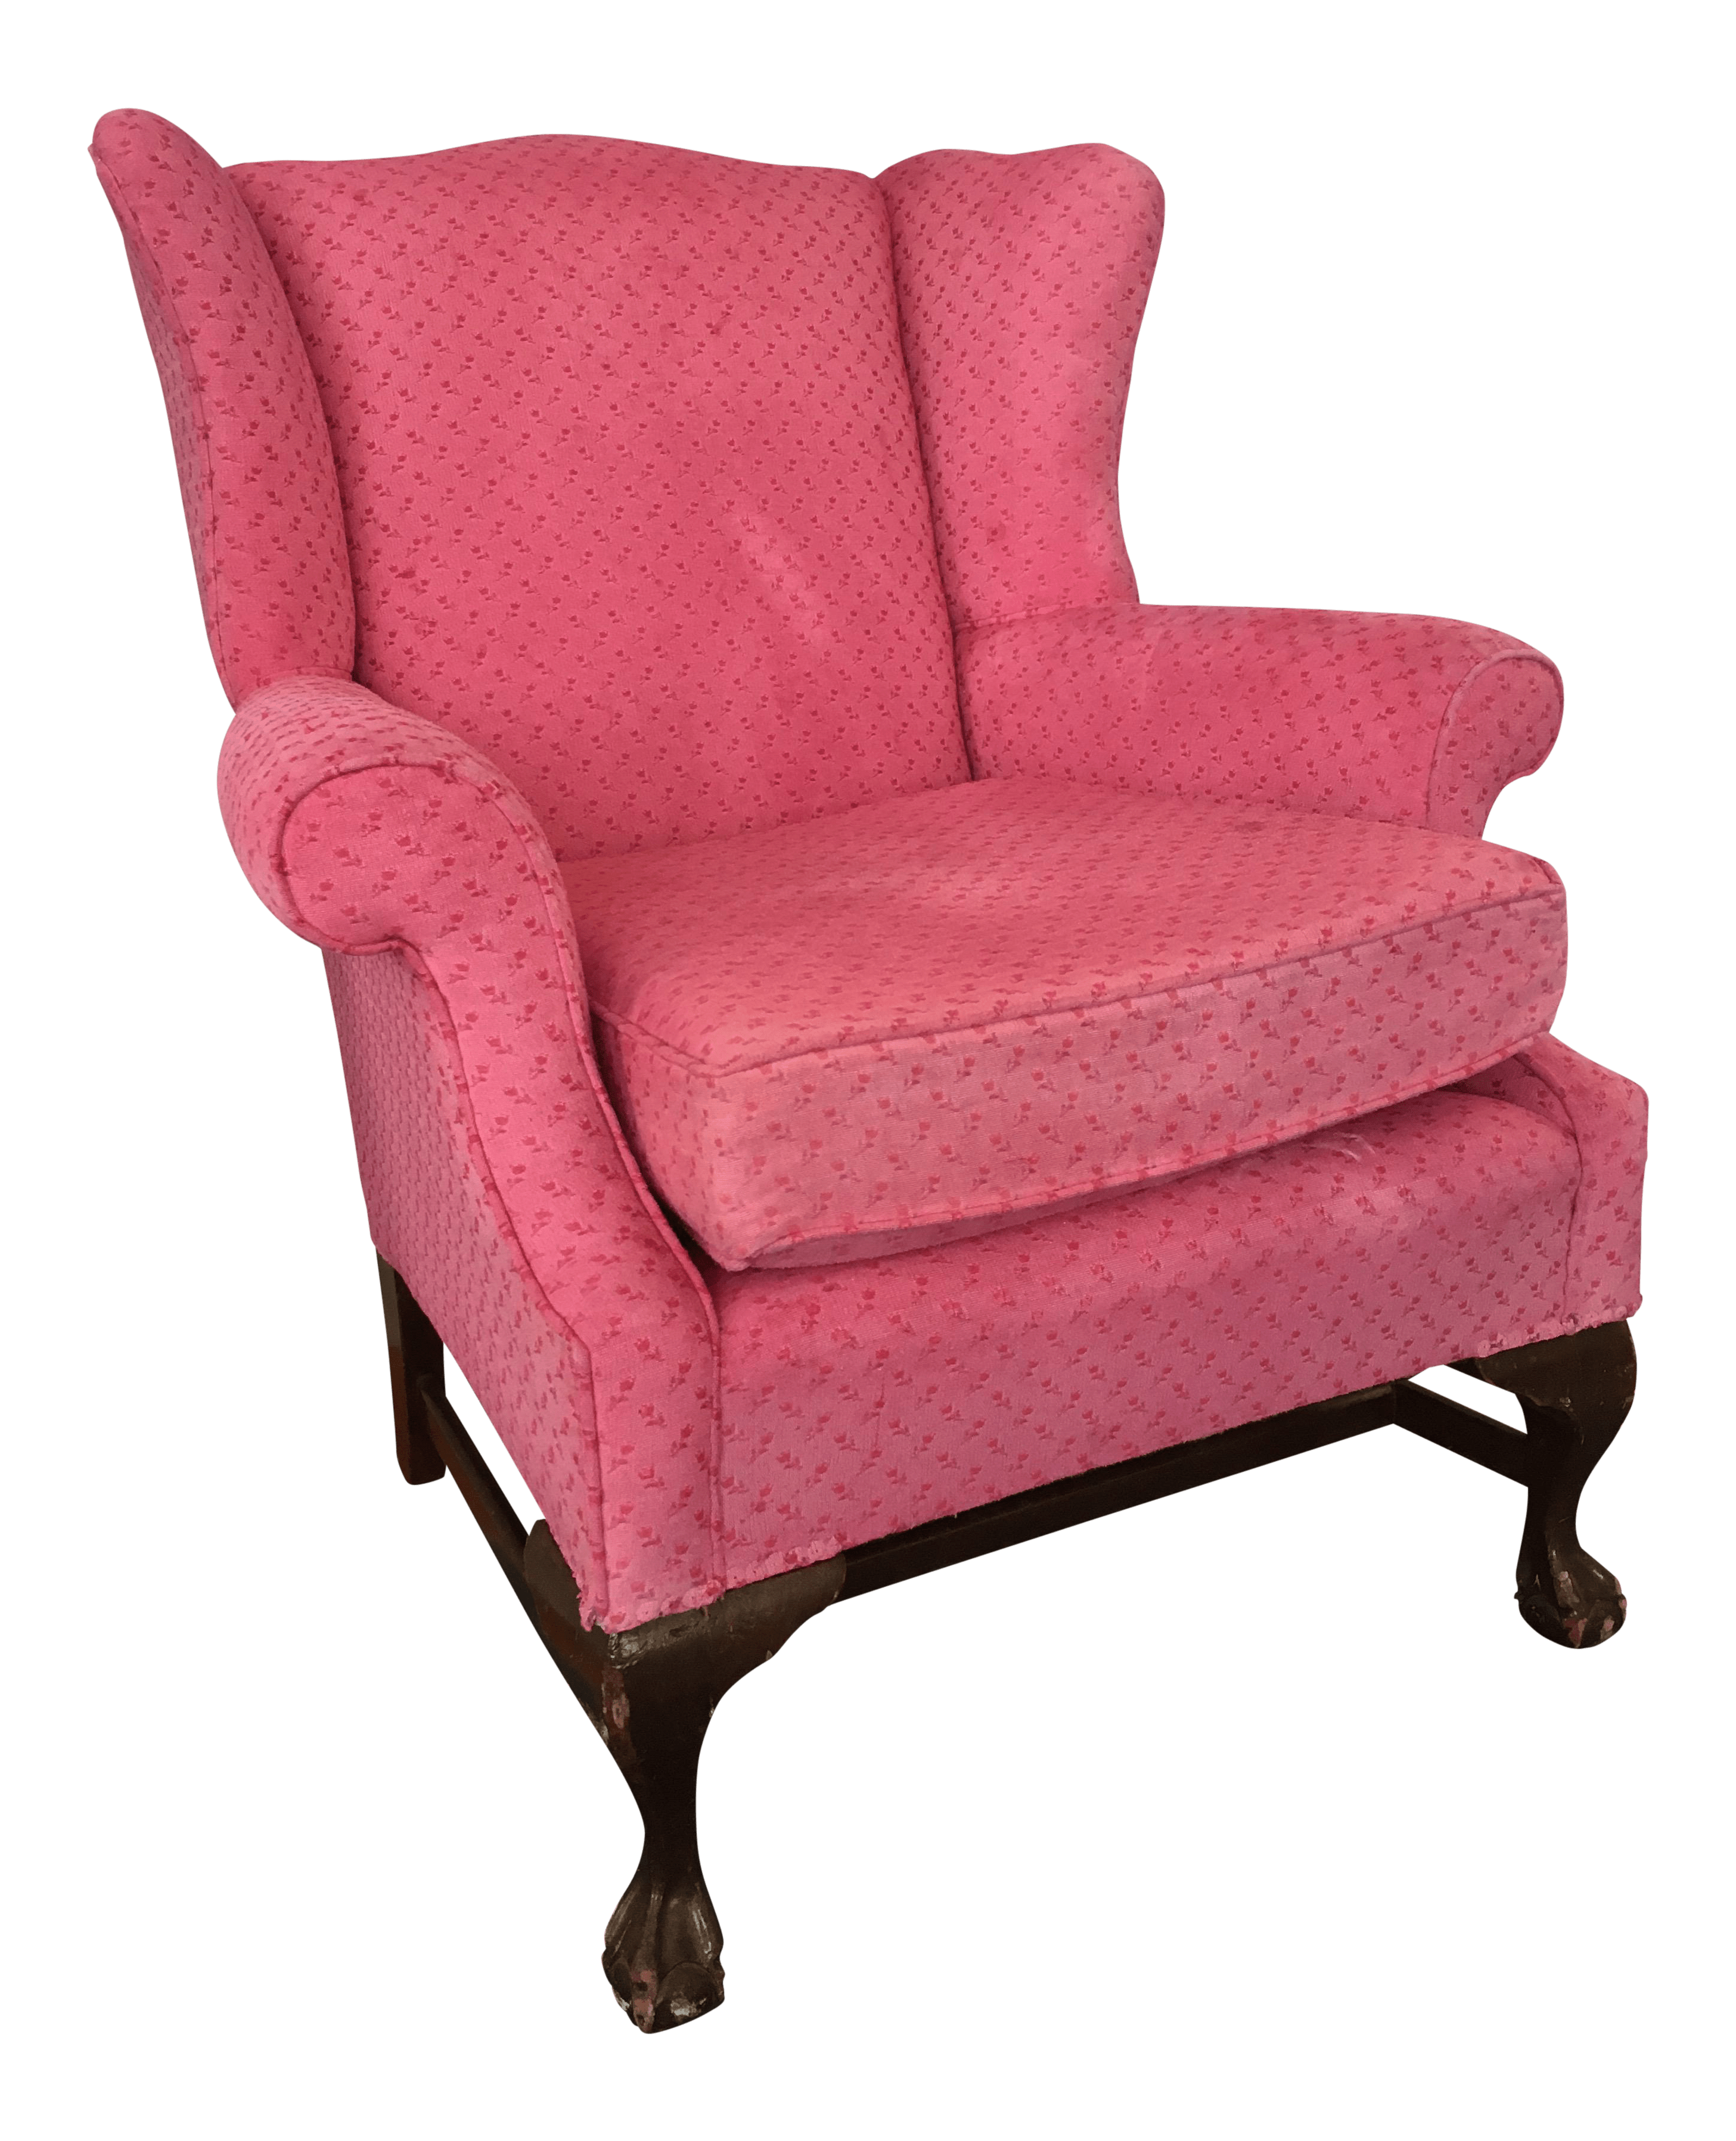 Vintage  Used Pink Wingback Chairs  Chairish